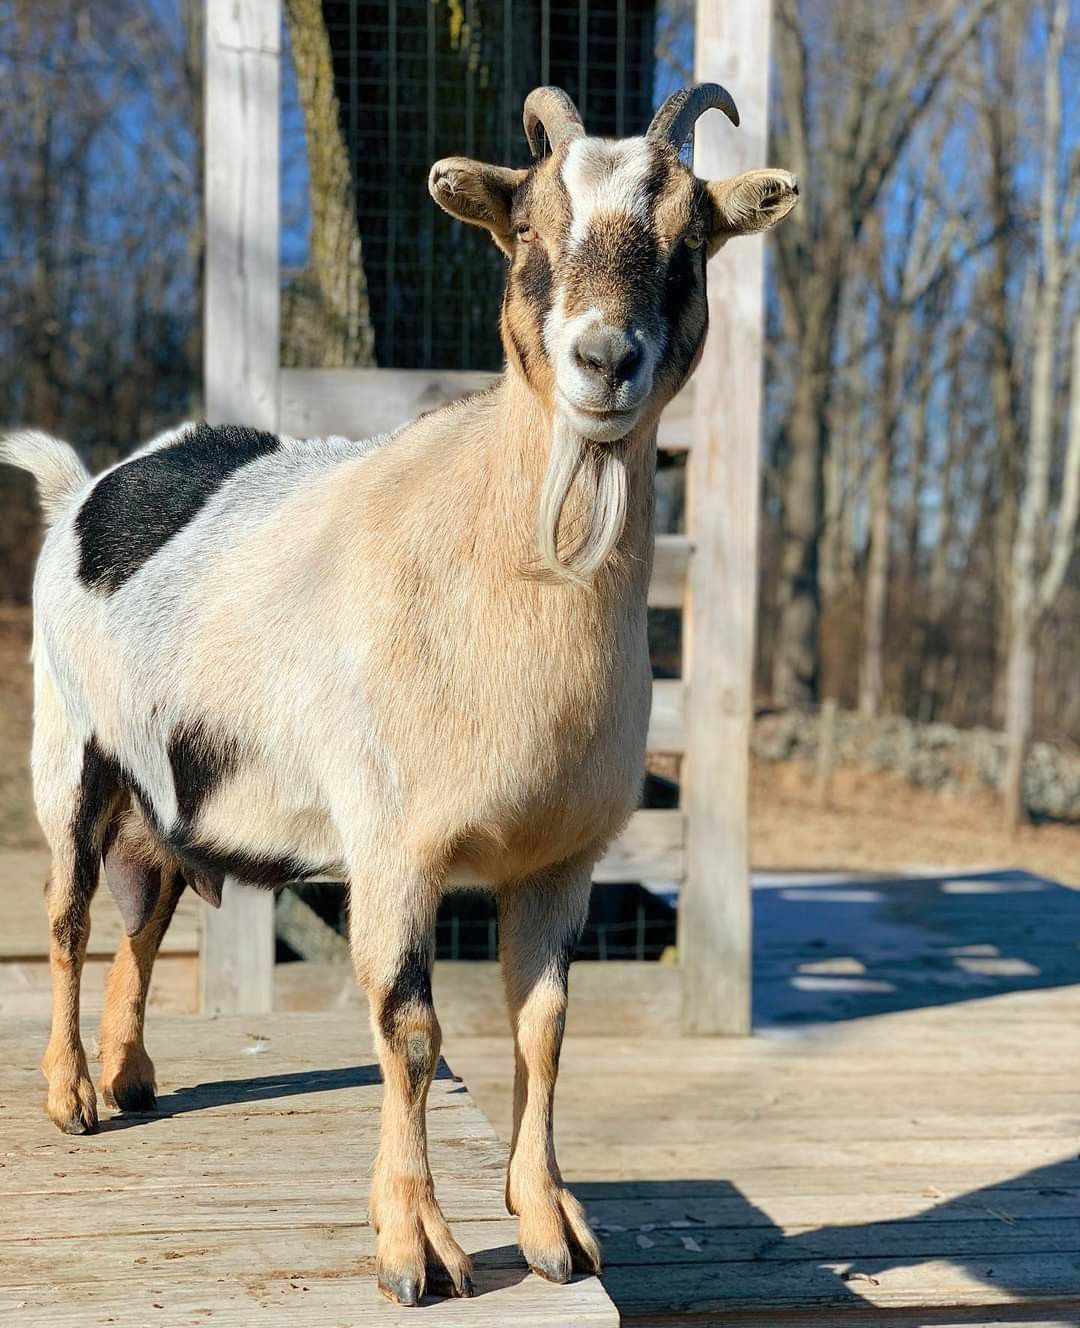 Maria From Goats Of Anarchy On Facebook In 2021 Cute Funny Animals Funny Animals Animals